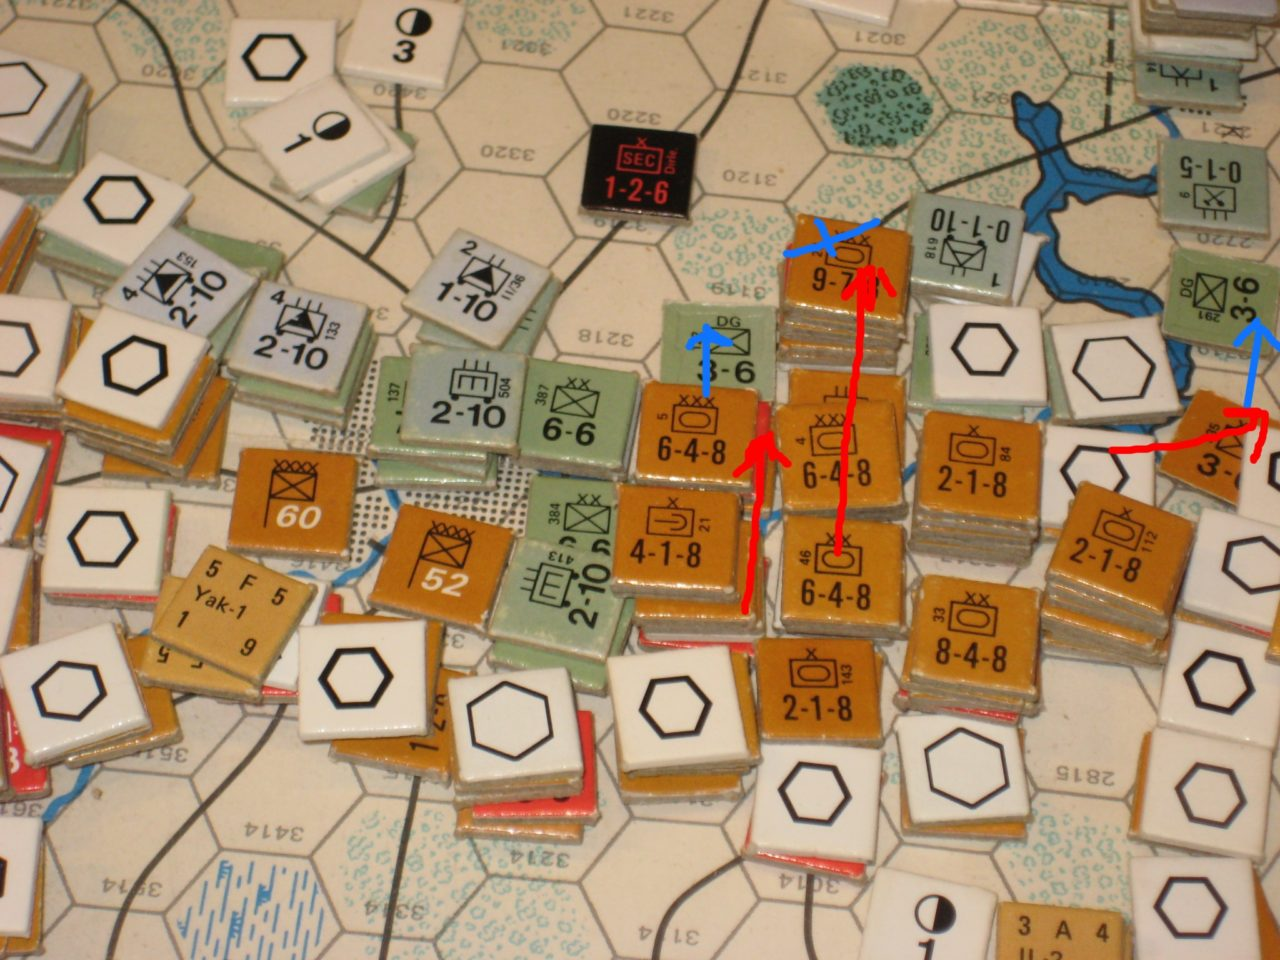 Soviets Launch Offensive over the Volga Canal